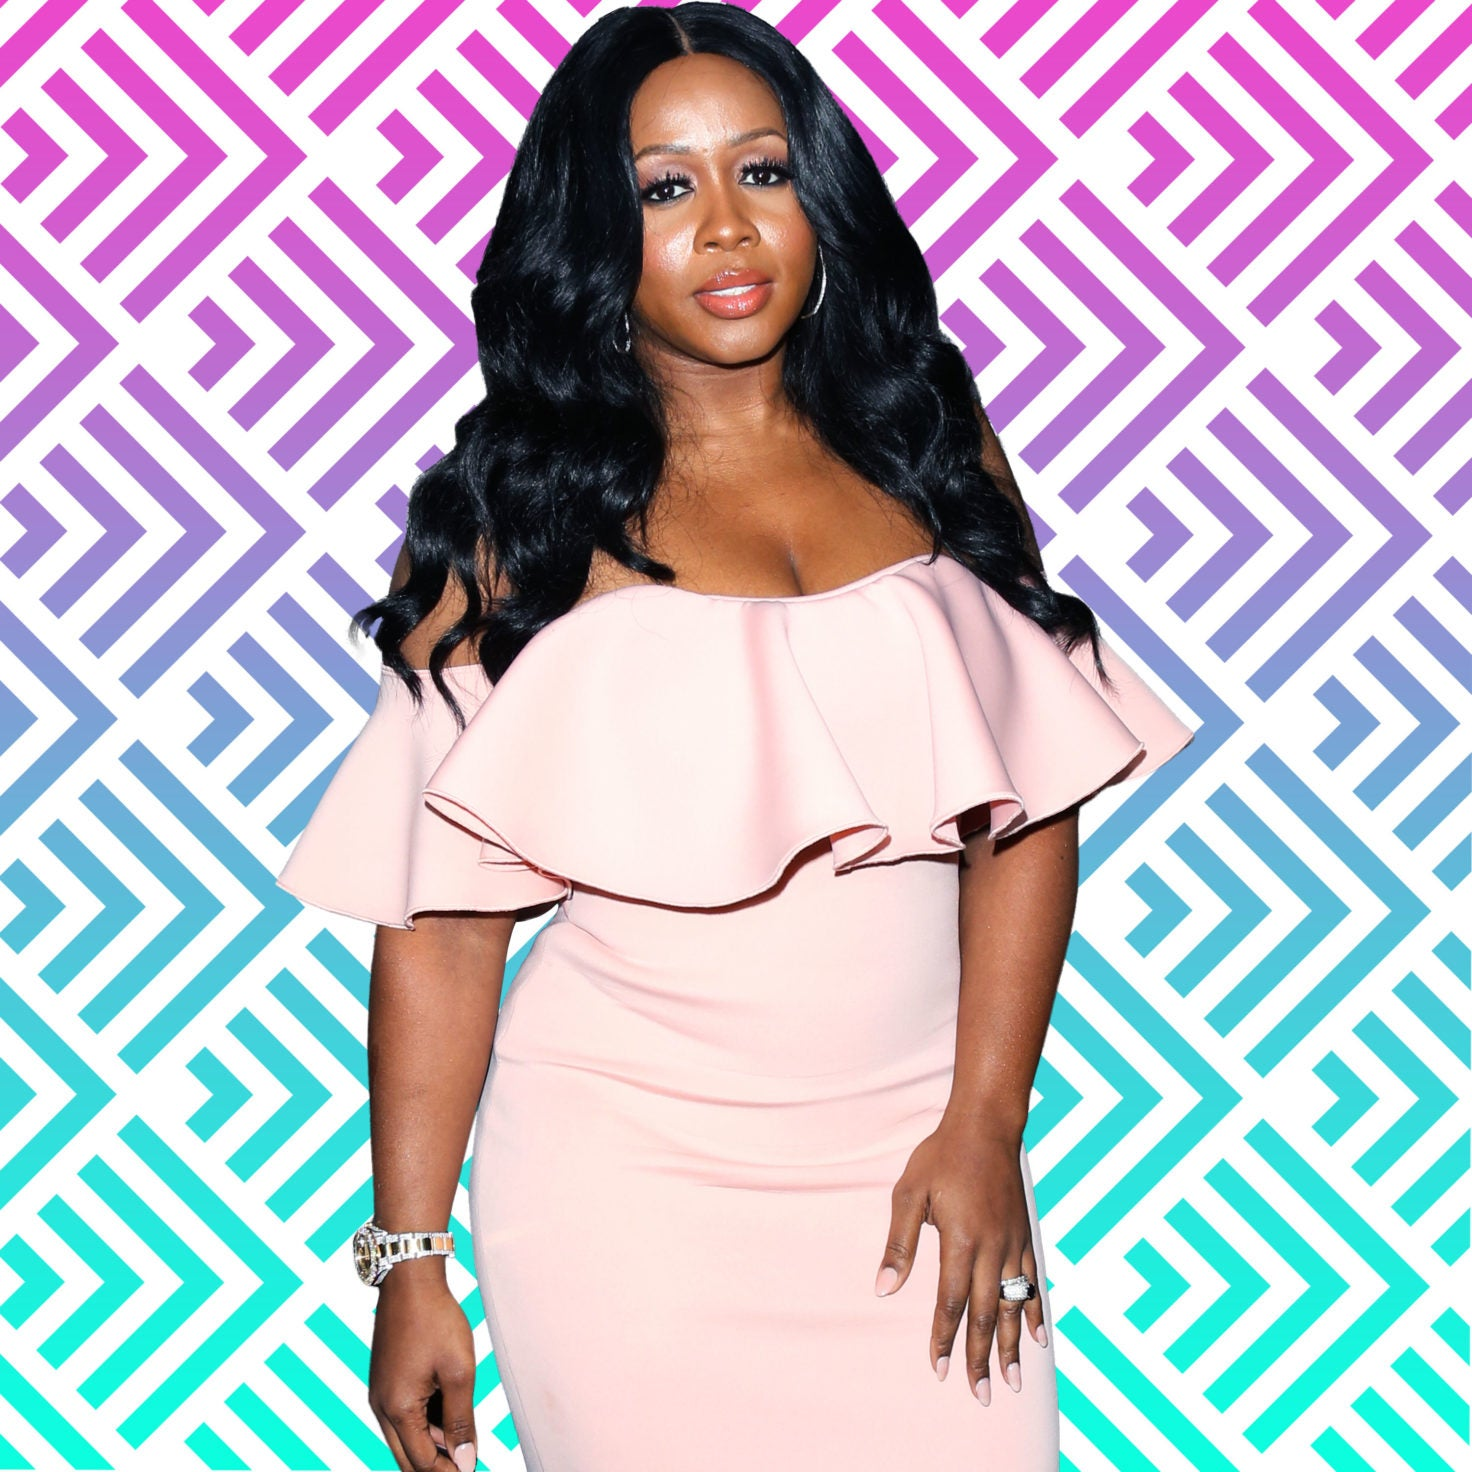 Remy Ma Reportedly Rushed Into Surgery Days After Giving Birth